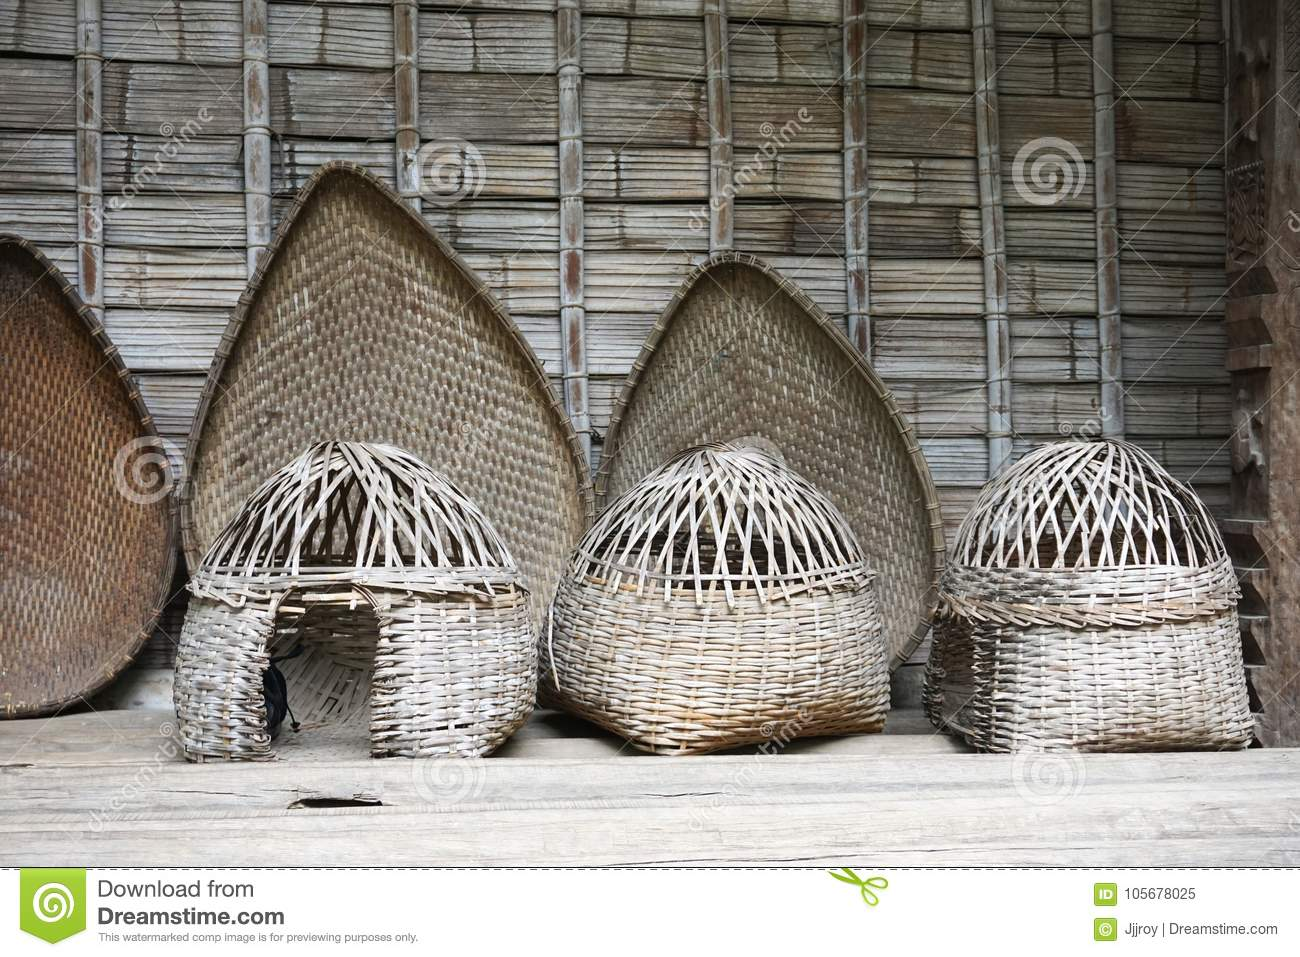 Vintage Handwoven Bamboo Baskets In Hanoi Vietnam Stock Image Image Of Containers Asia 105678025